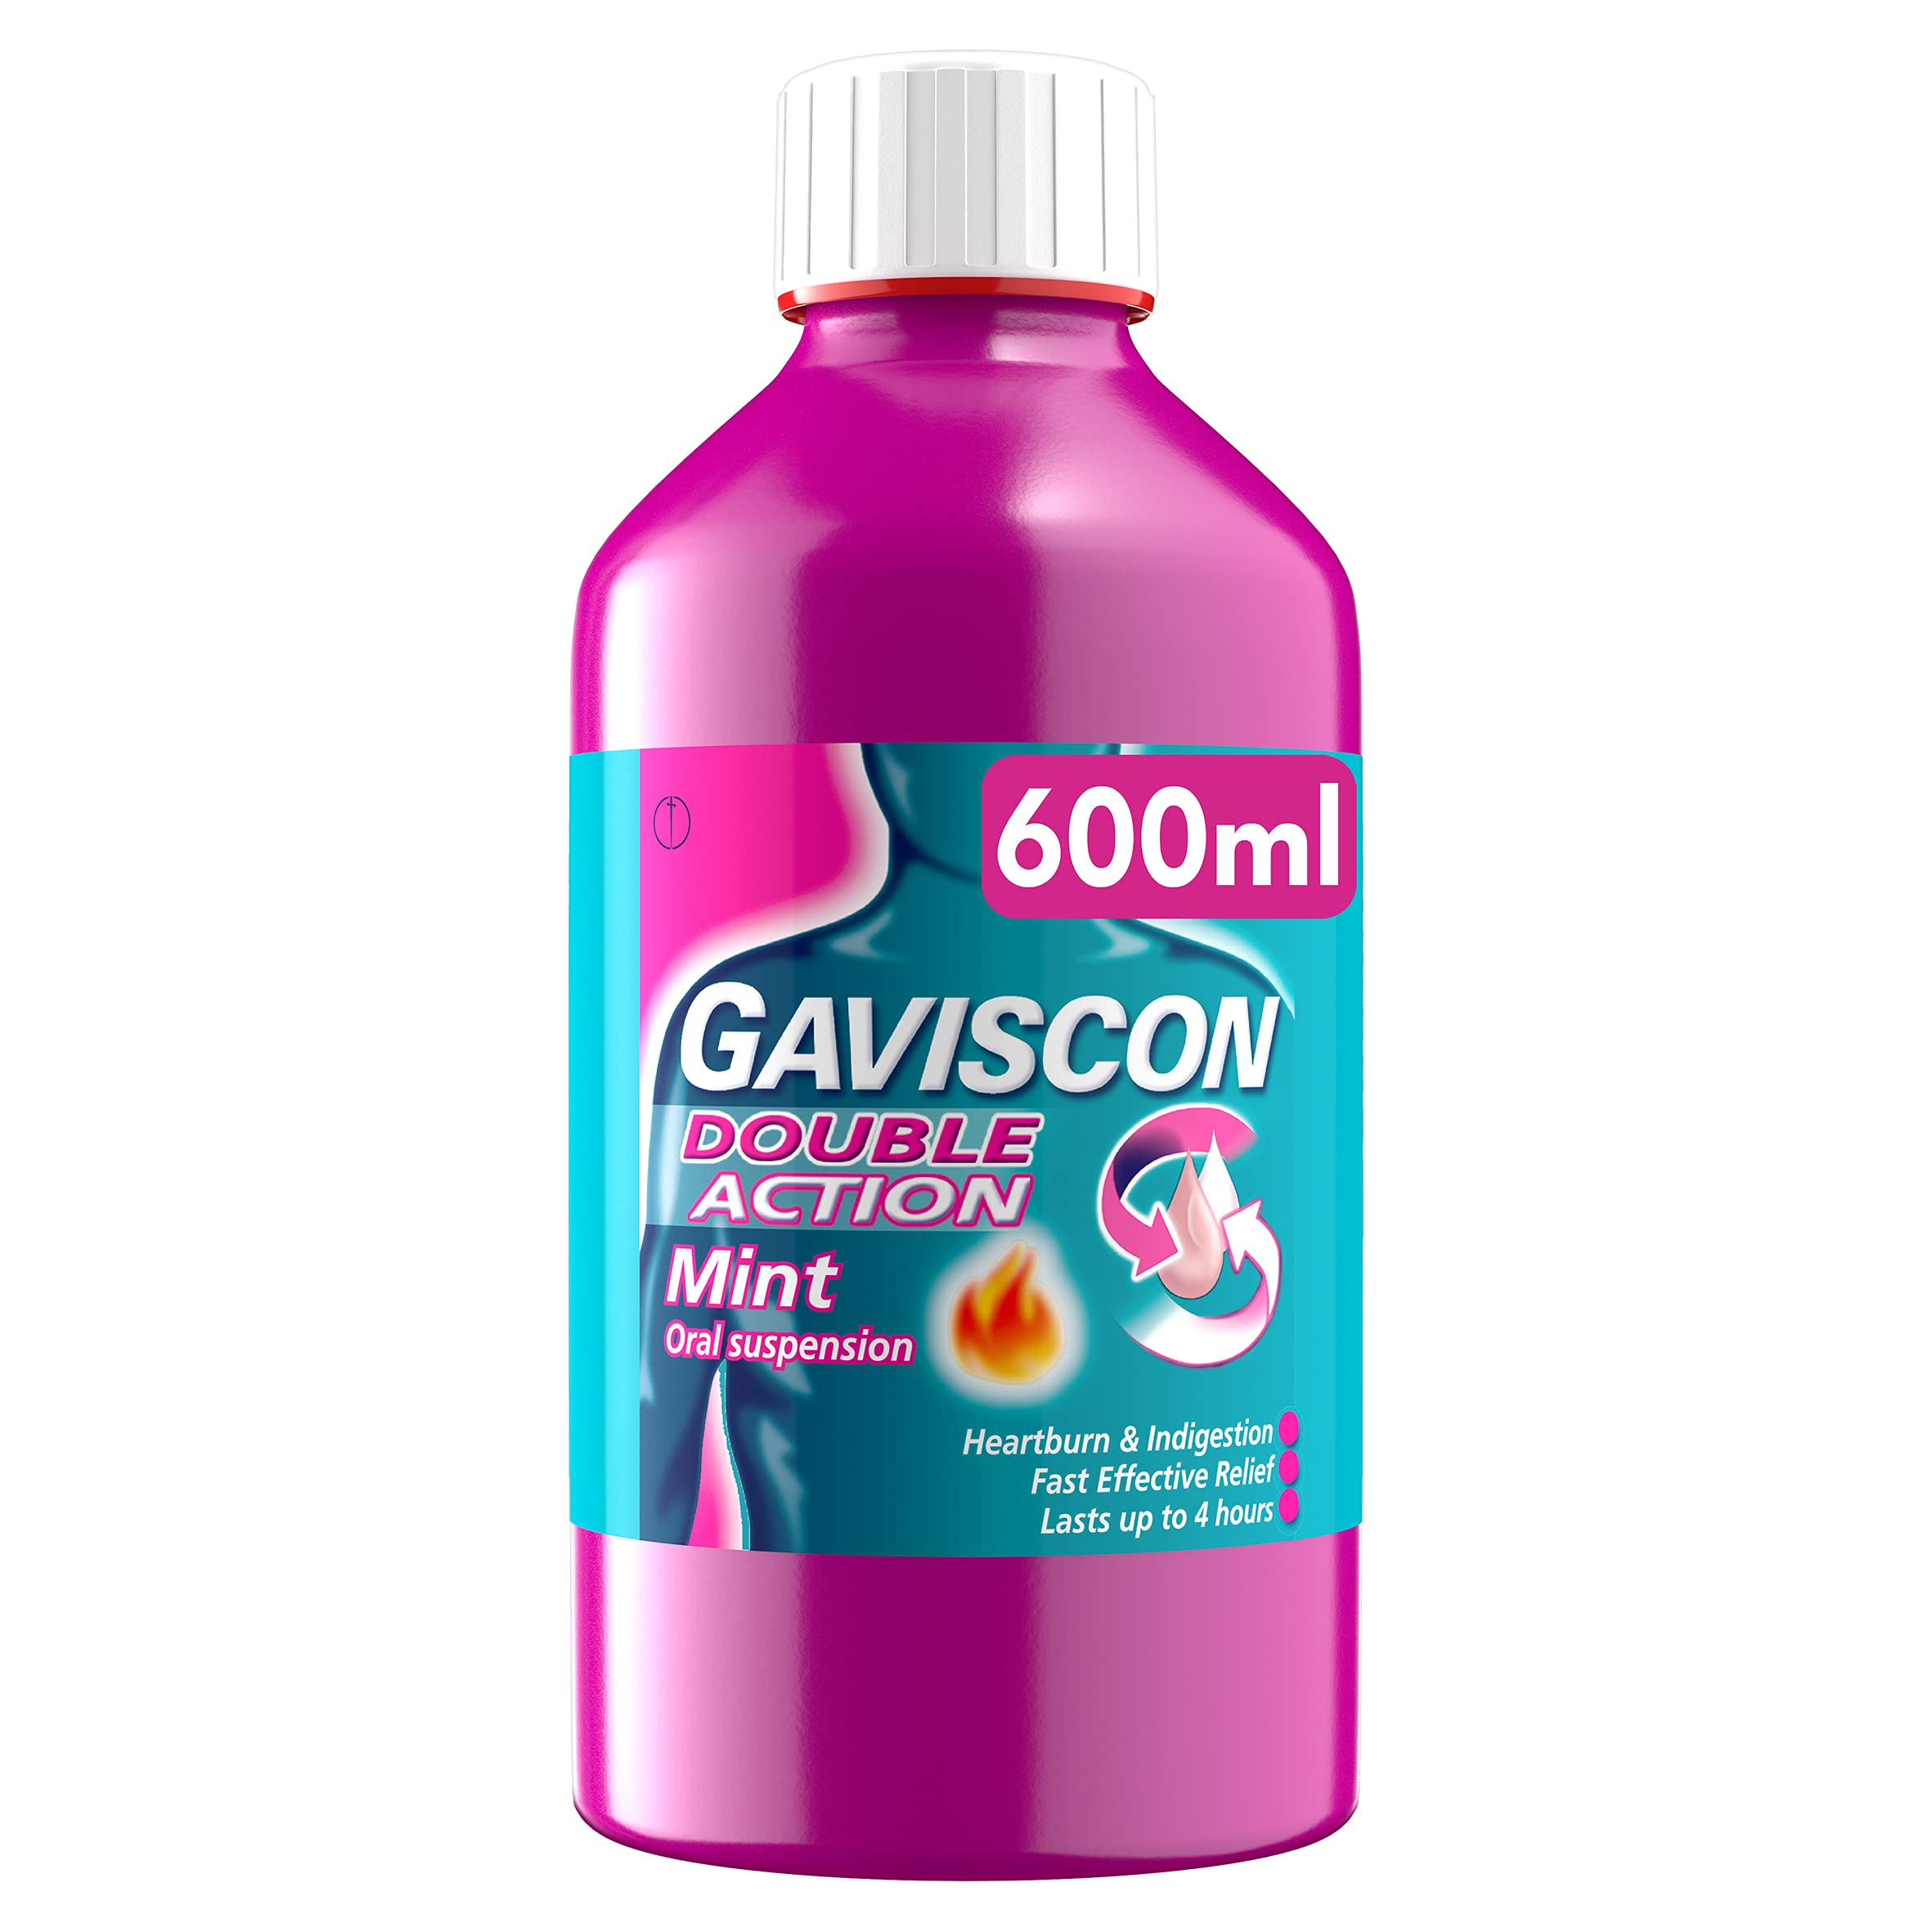 Gaviscon Heartburn Relief and Indigestion Liquid, Double Action, Mint Flavour, 600 ml